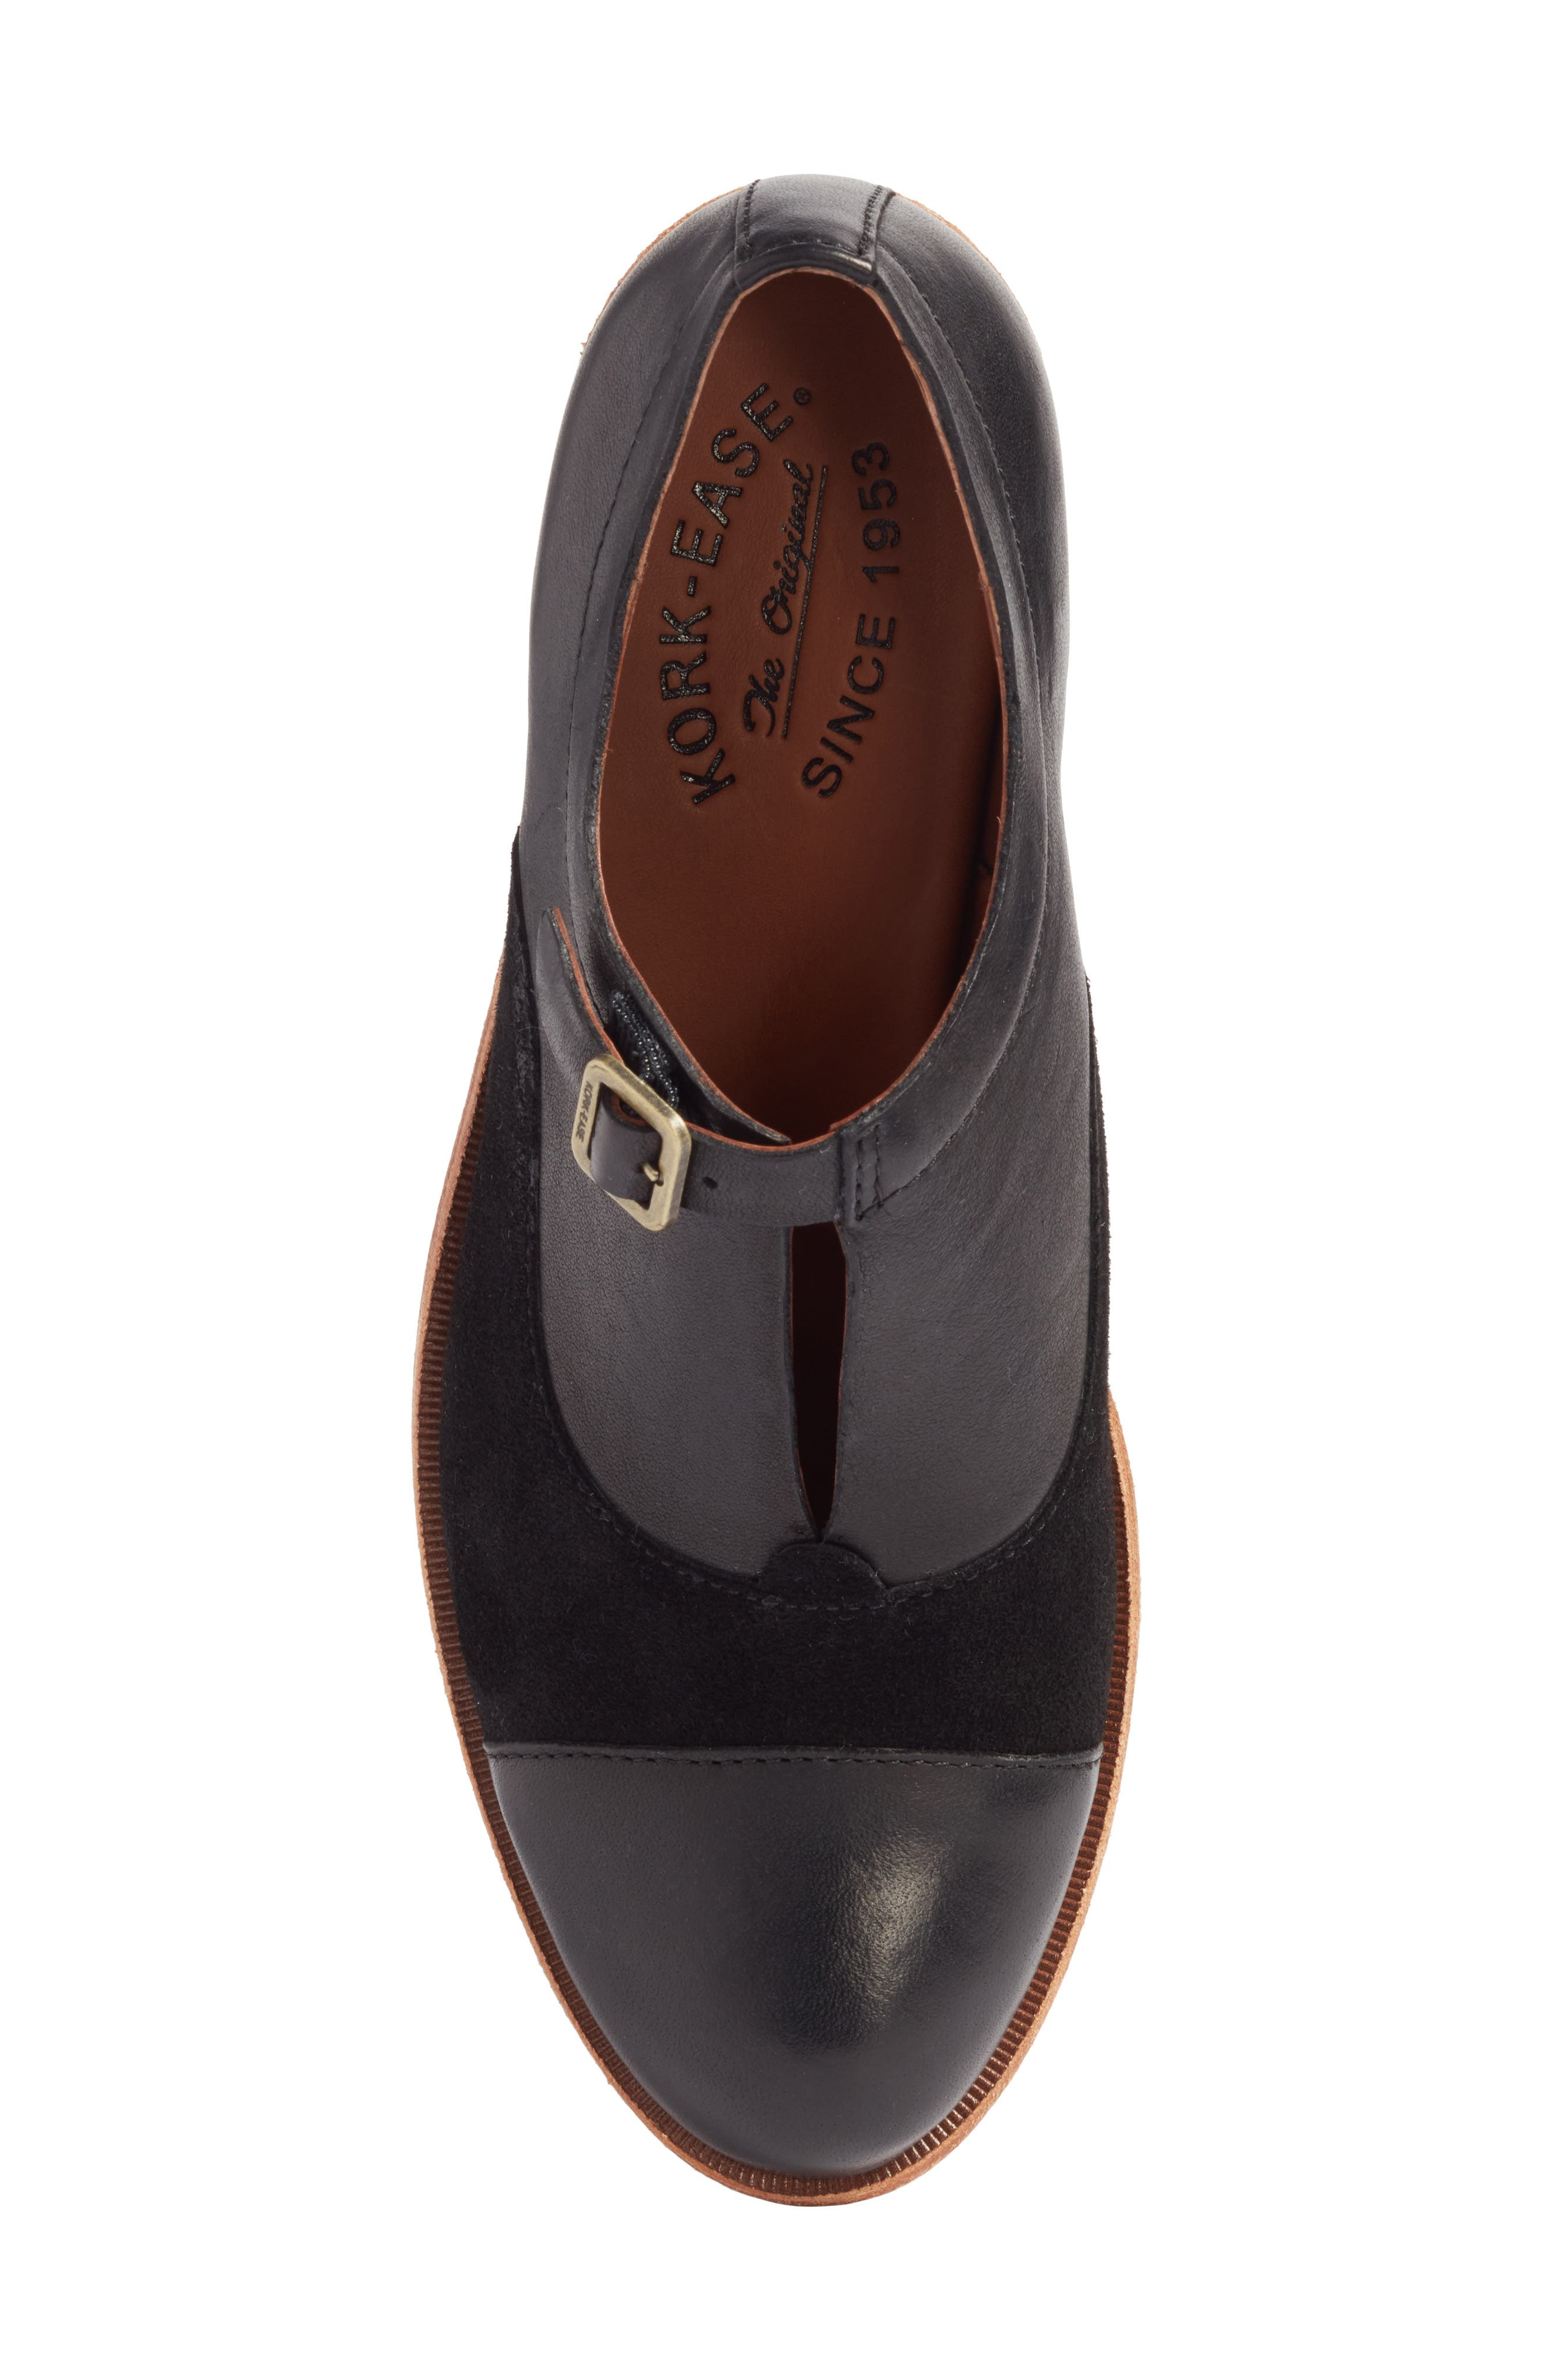 'Niseda' Oxford,                             Alternate thumbnail 8, color,                             Black Leather Suede Combo